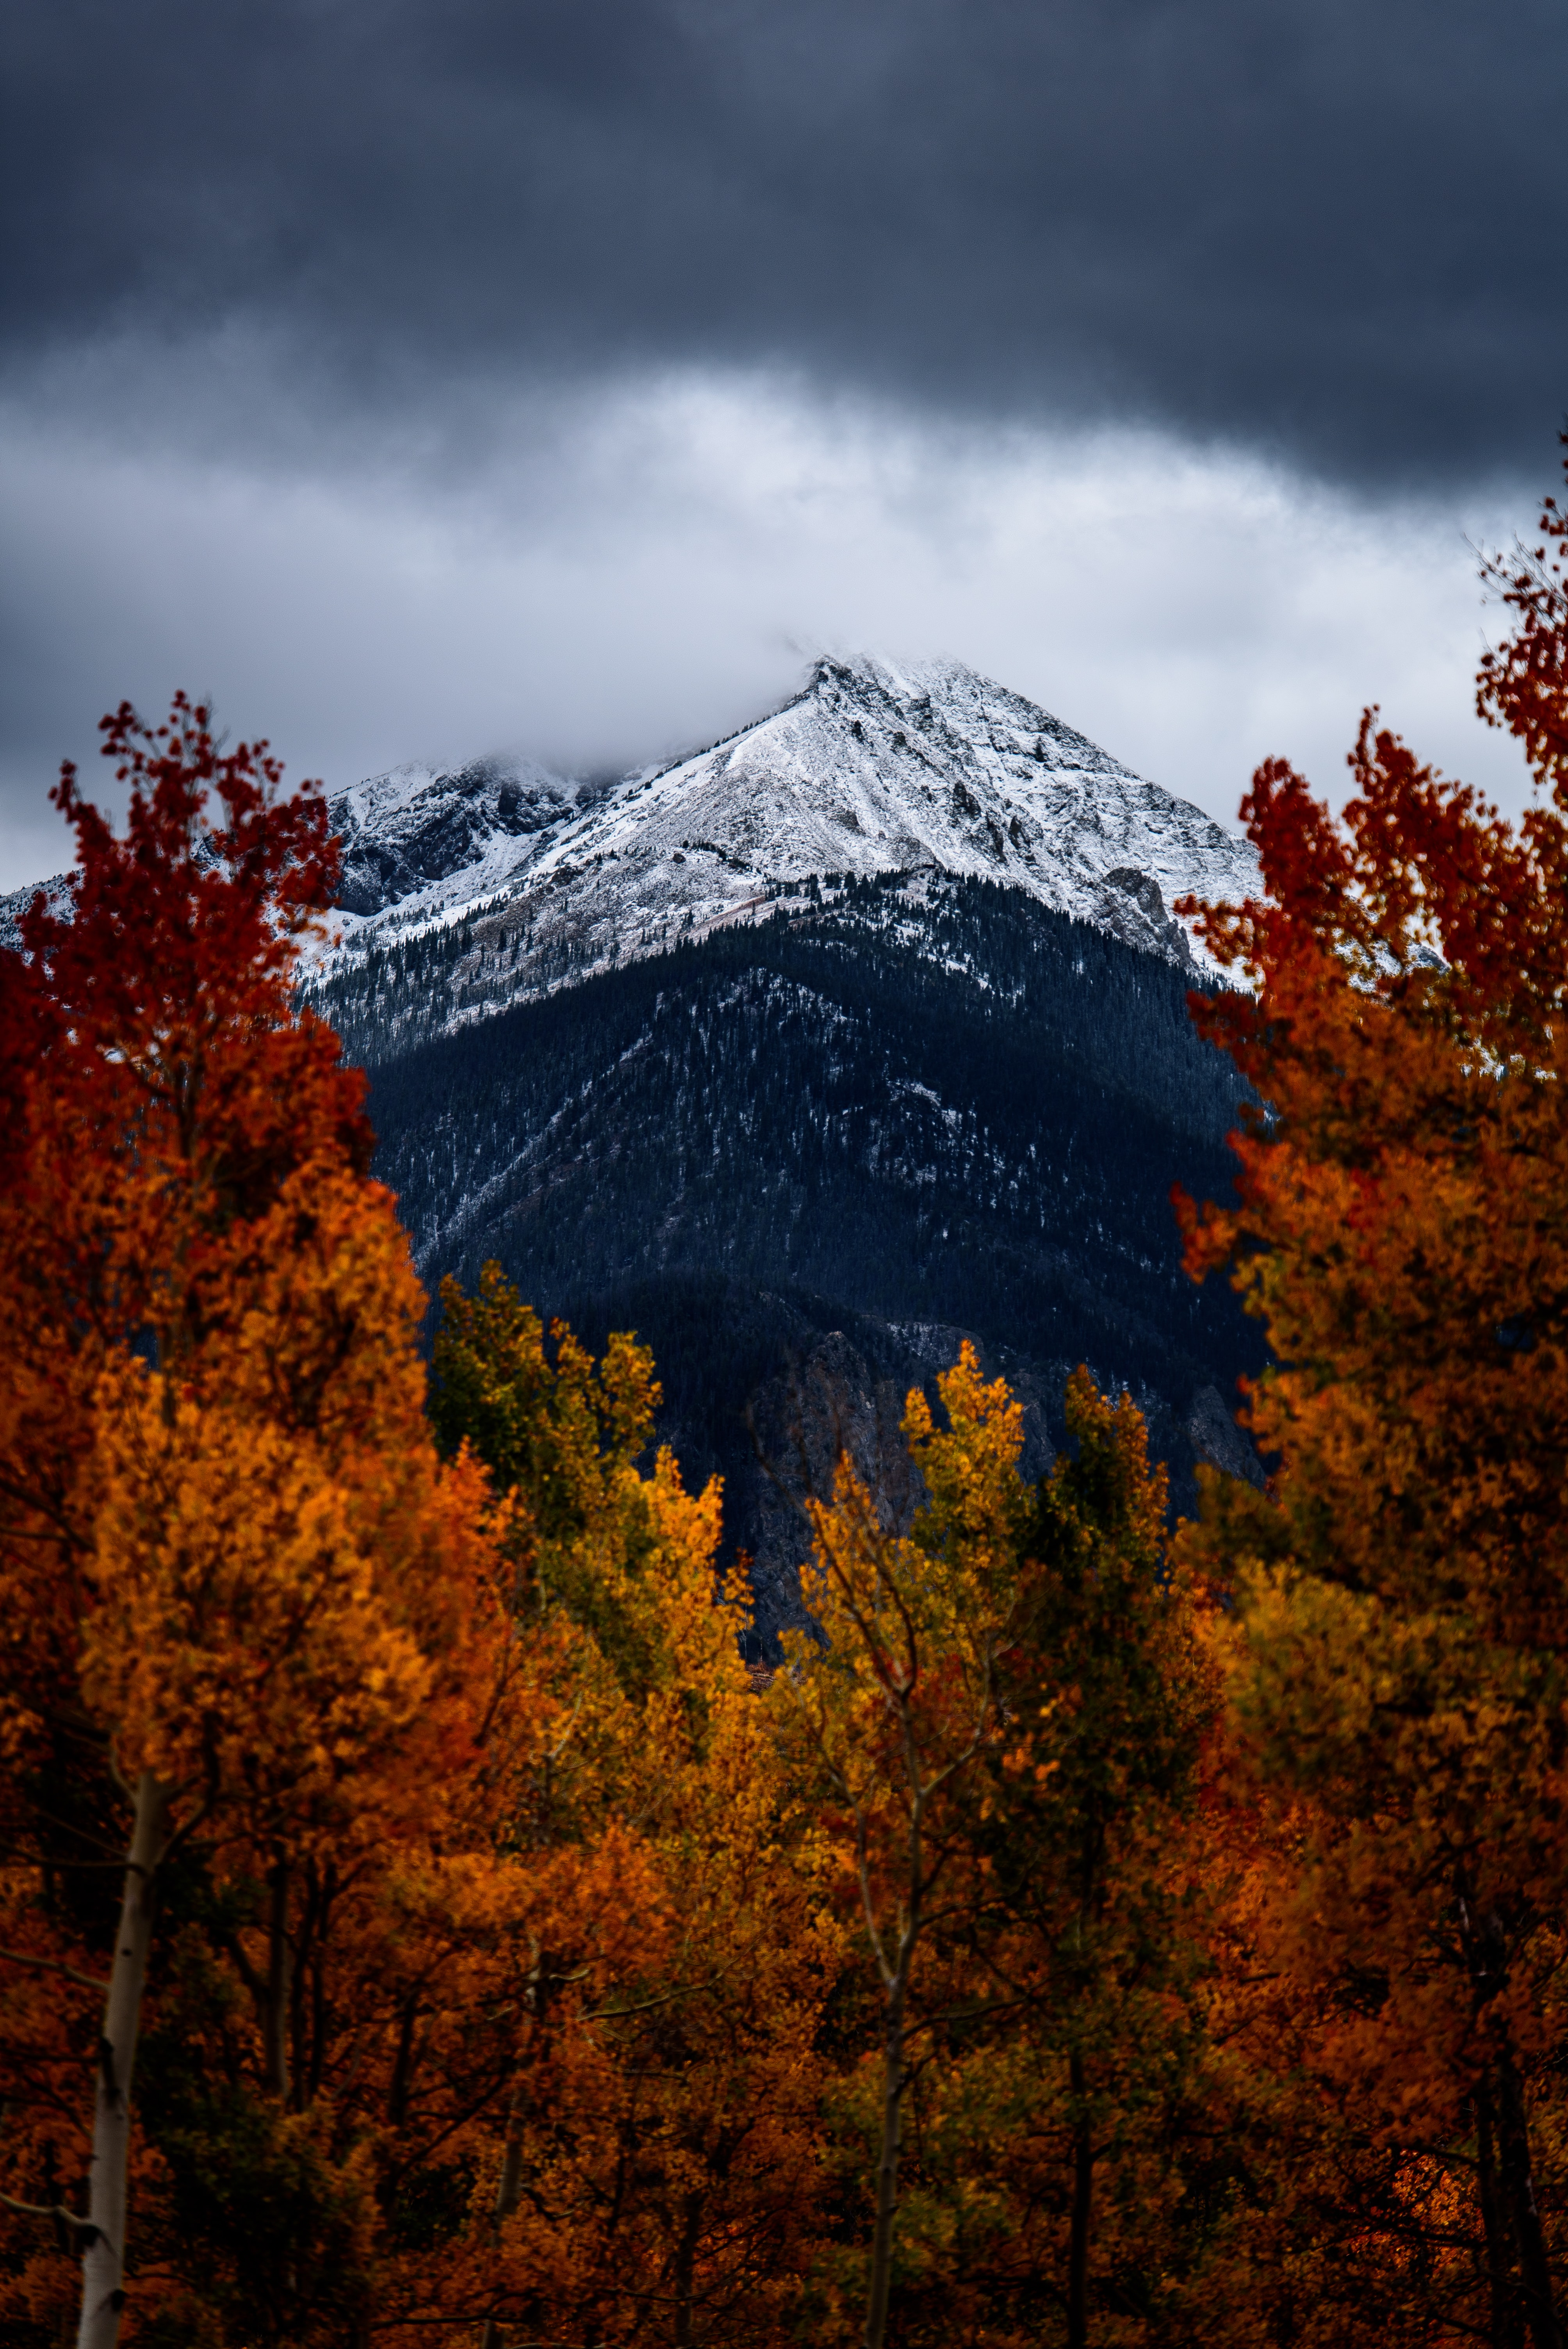 brown leafed trees in front of snow covered mountain under cloudy sky